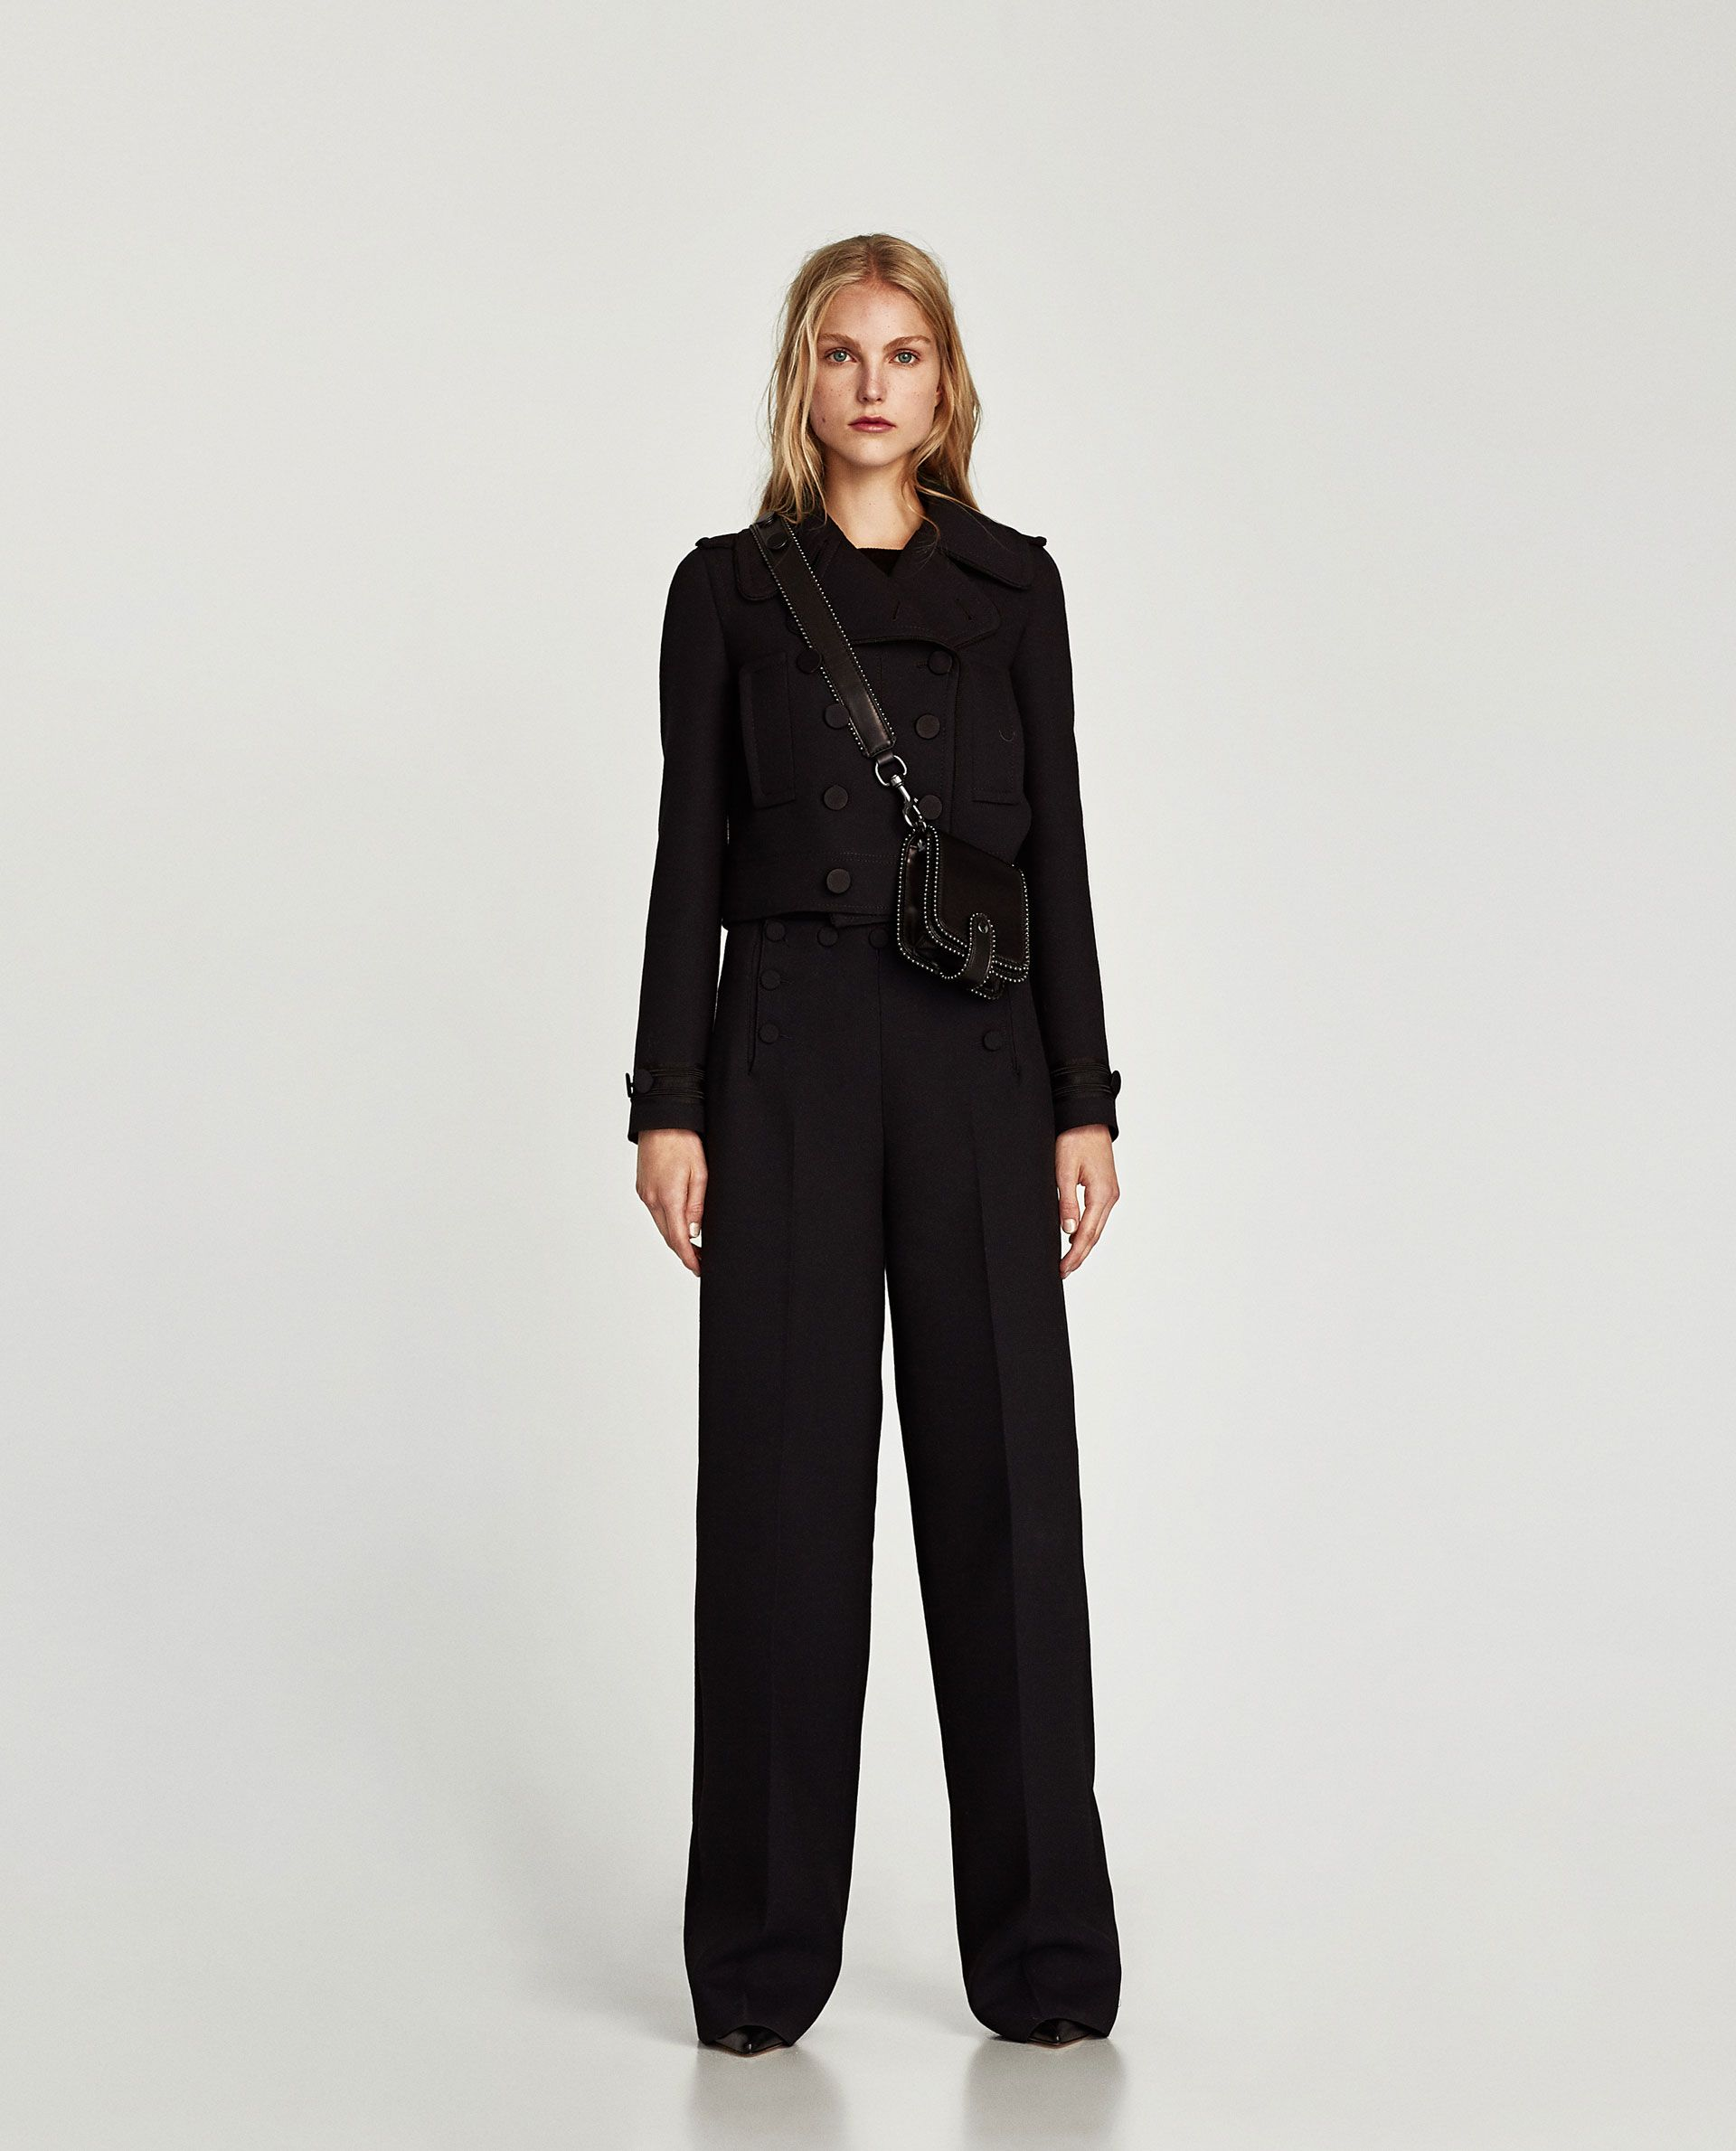 Image of trousers with front buttons from zara autumn wishlist